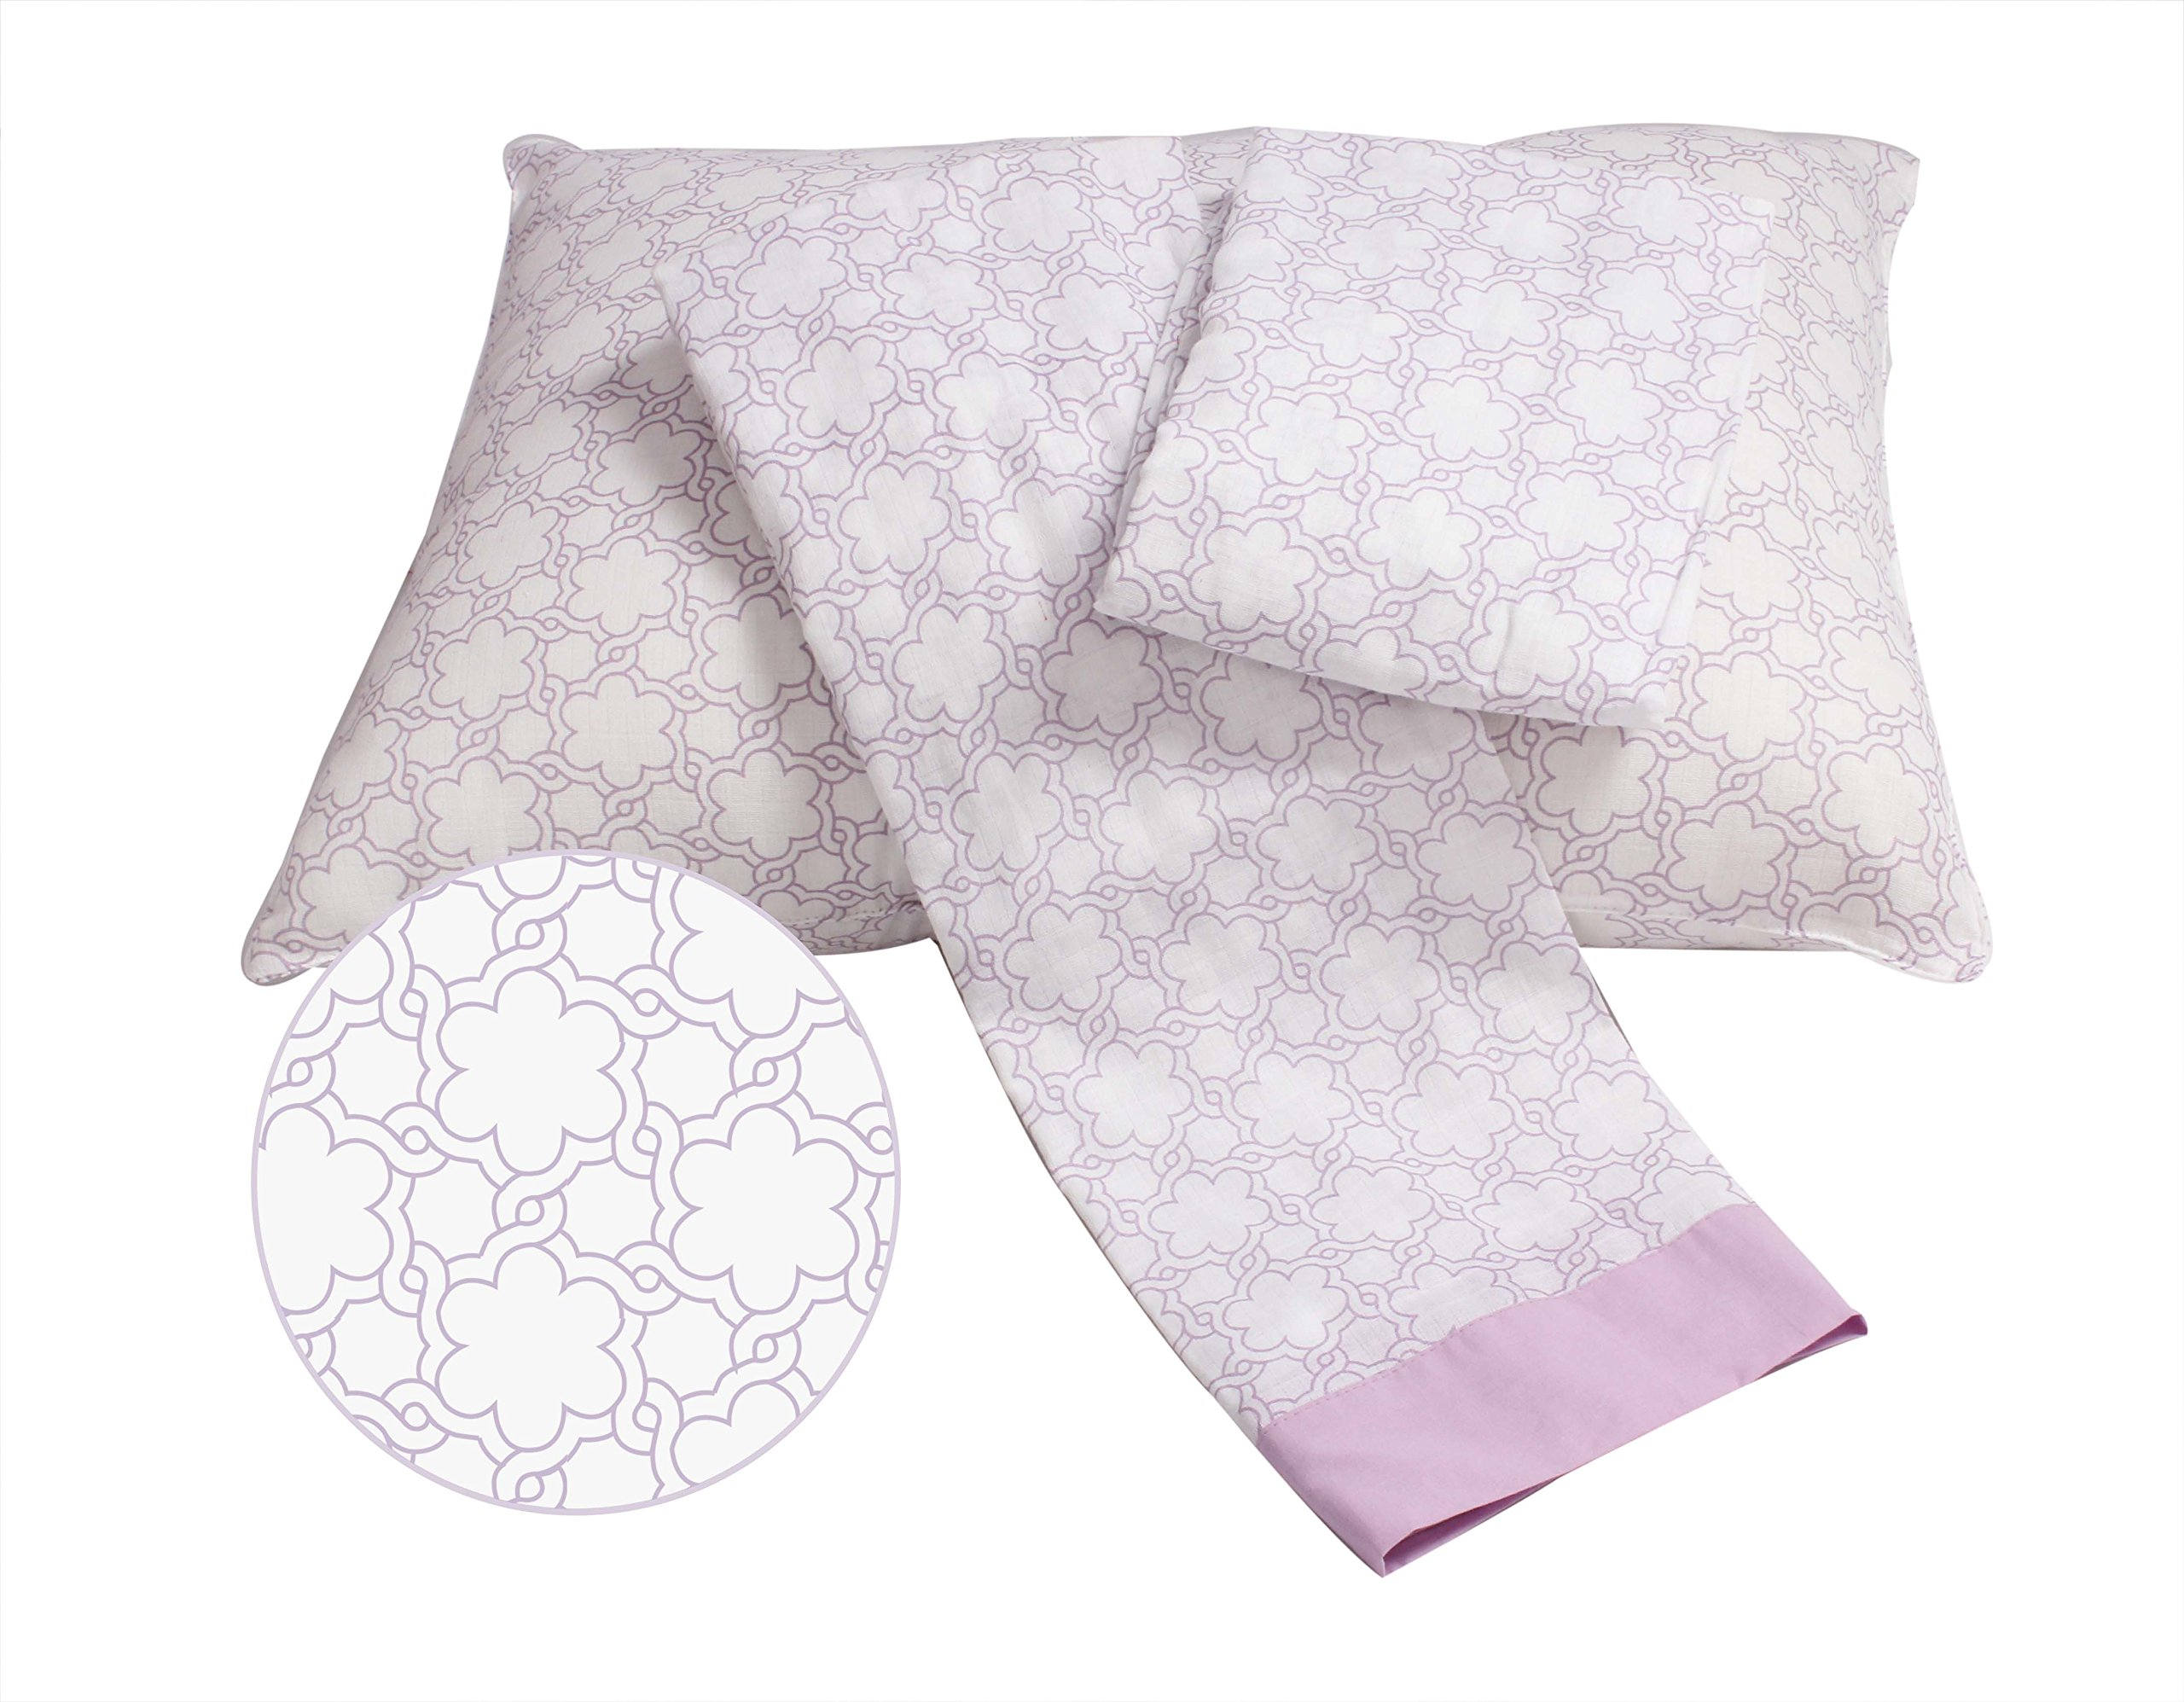 Bacati Floral Muslin 3 Piece Toddler Bedding Sheet Set, Lilac